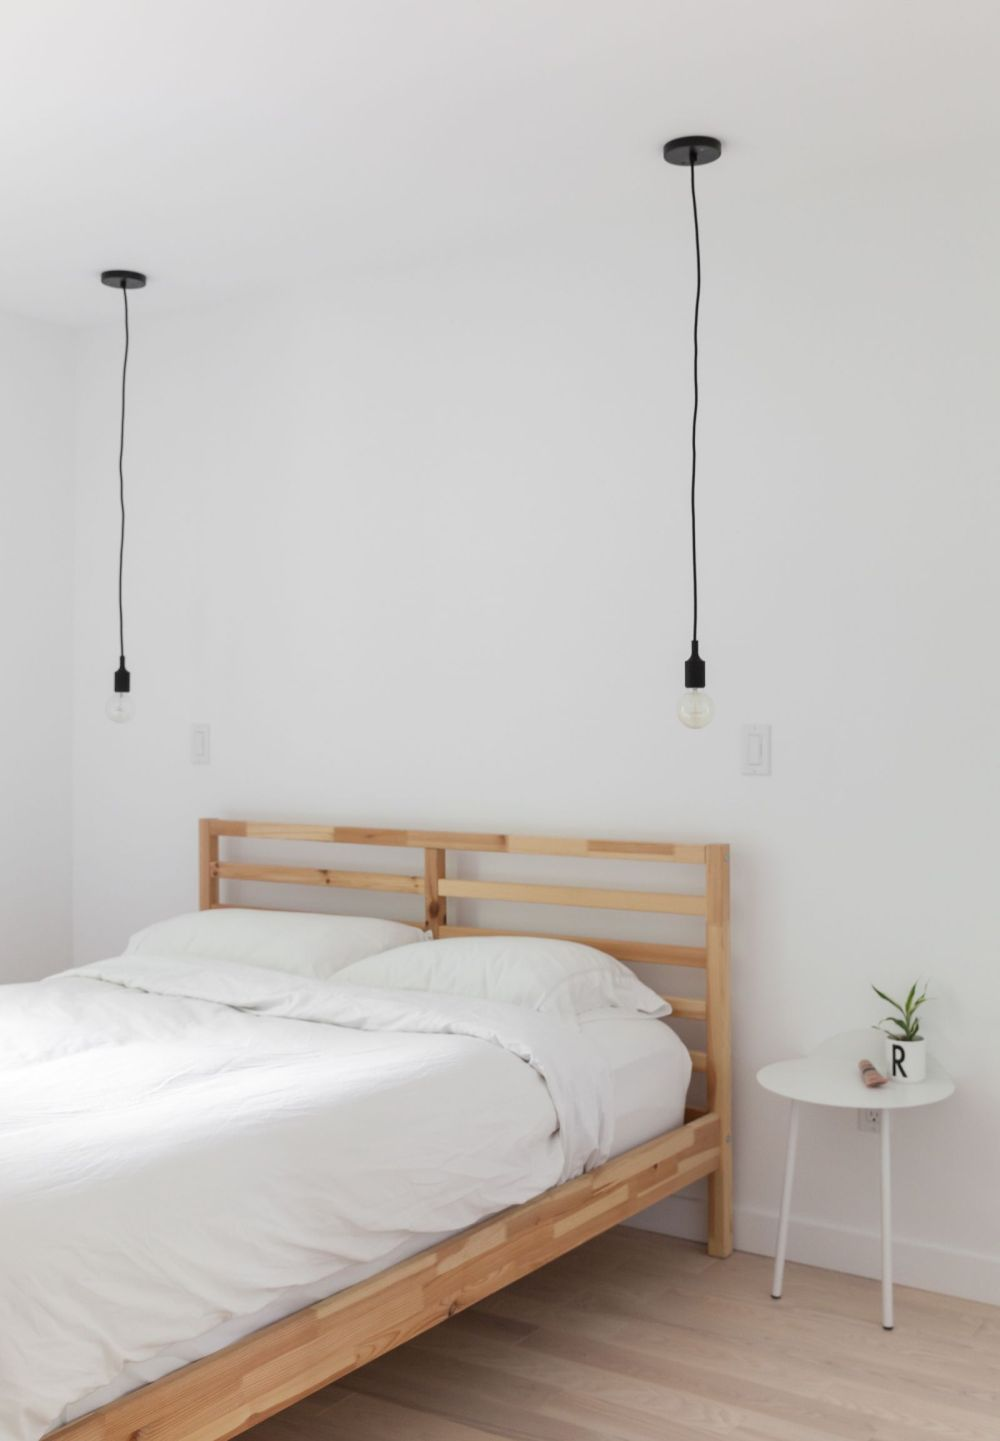 1560234219 627 try a minimalist bedroom design for less stress and a good nights sleep - Try a Minimalist Bedroom Design for Less Stress and a Good Night's Sleep